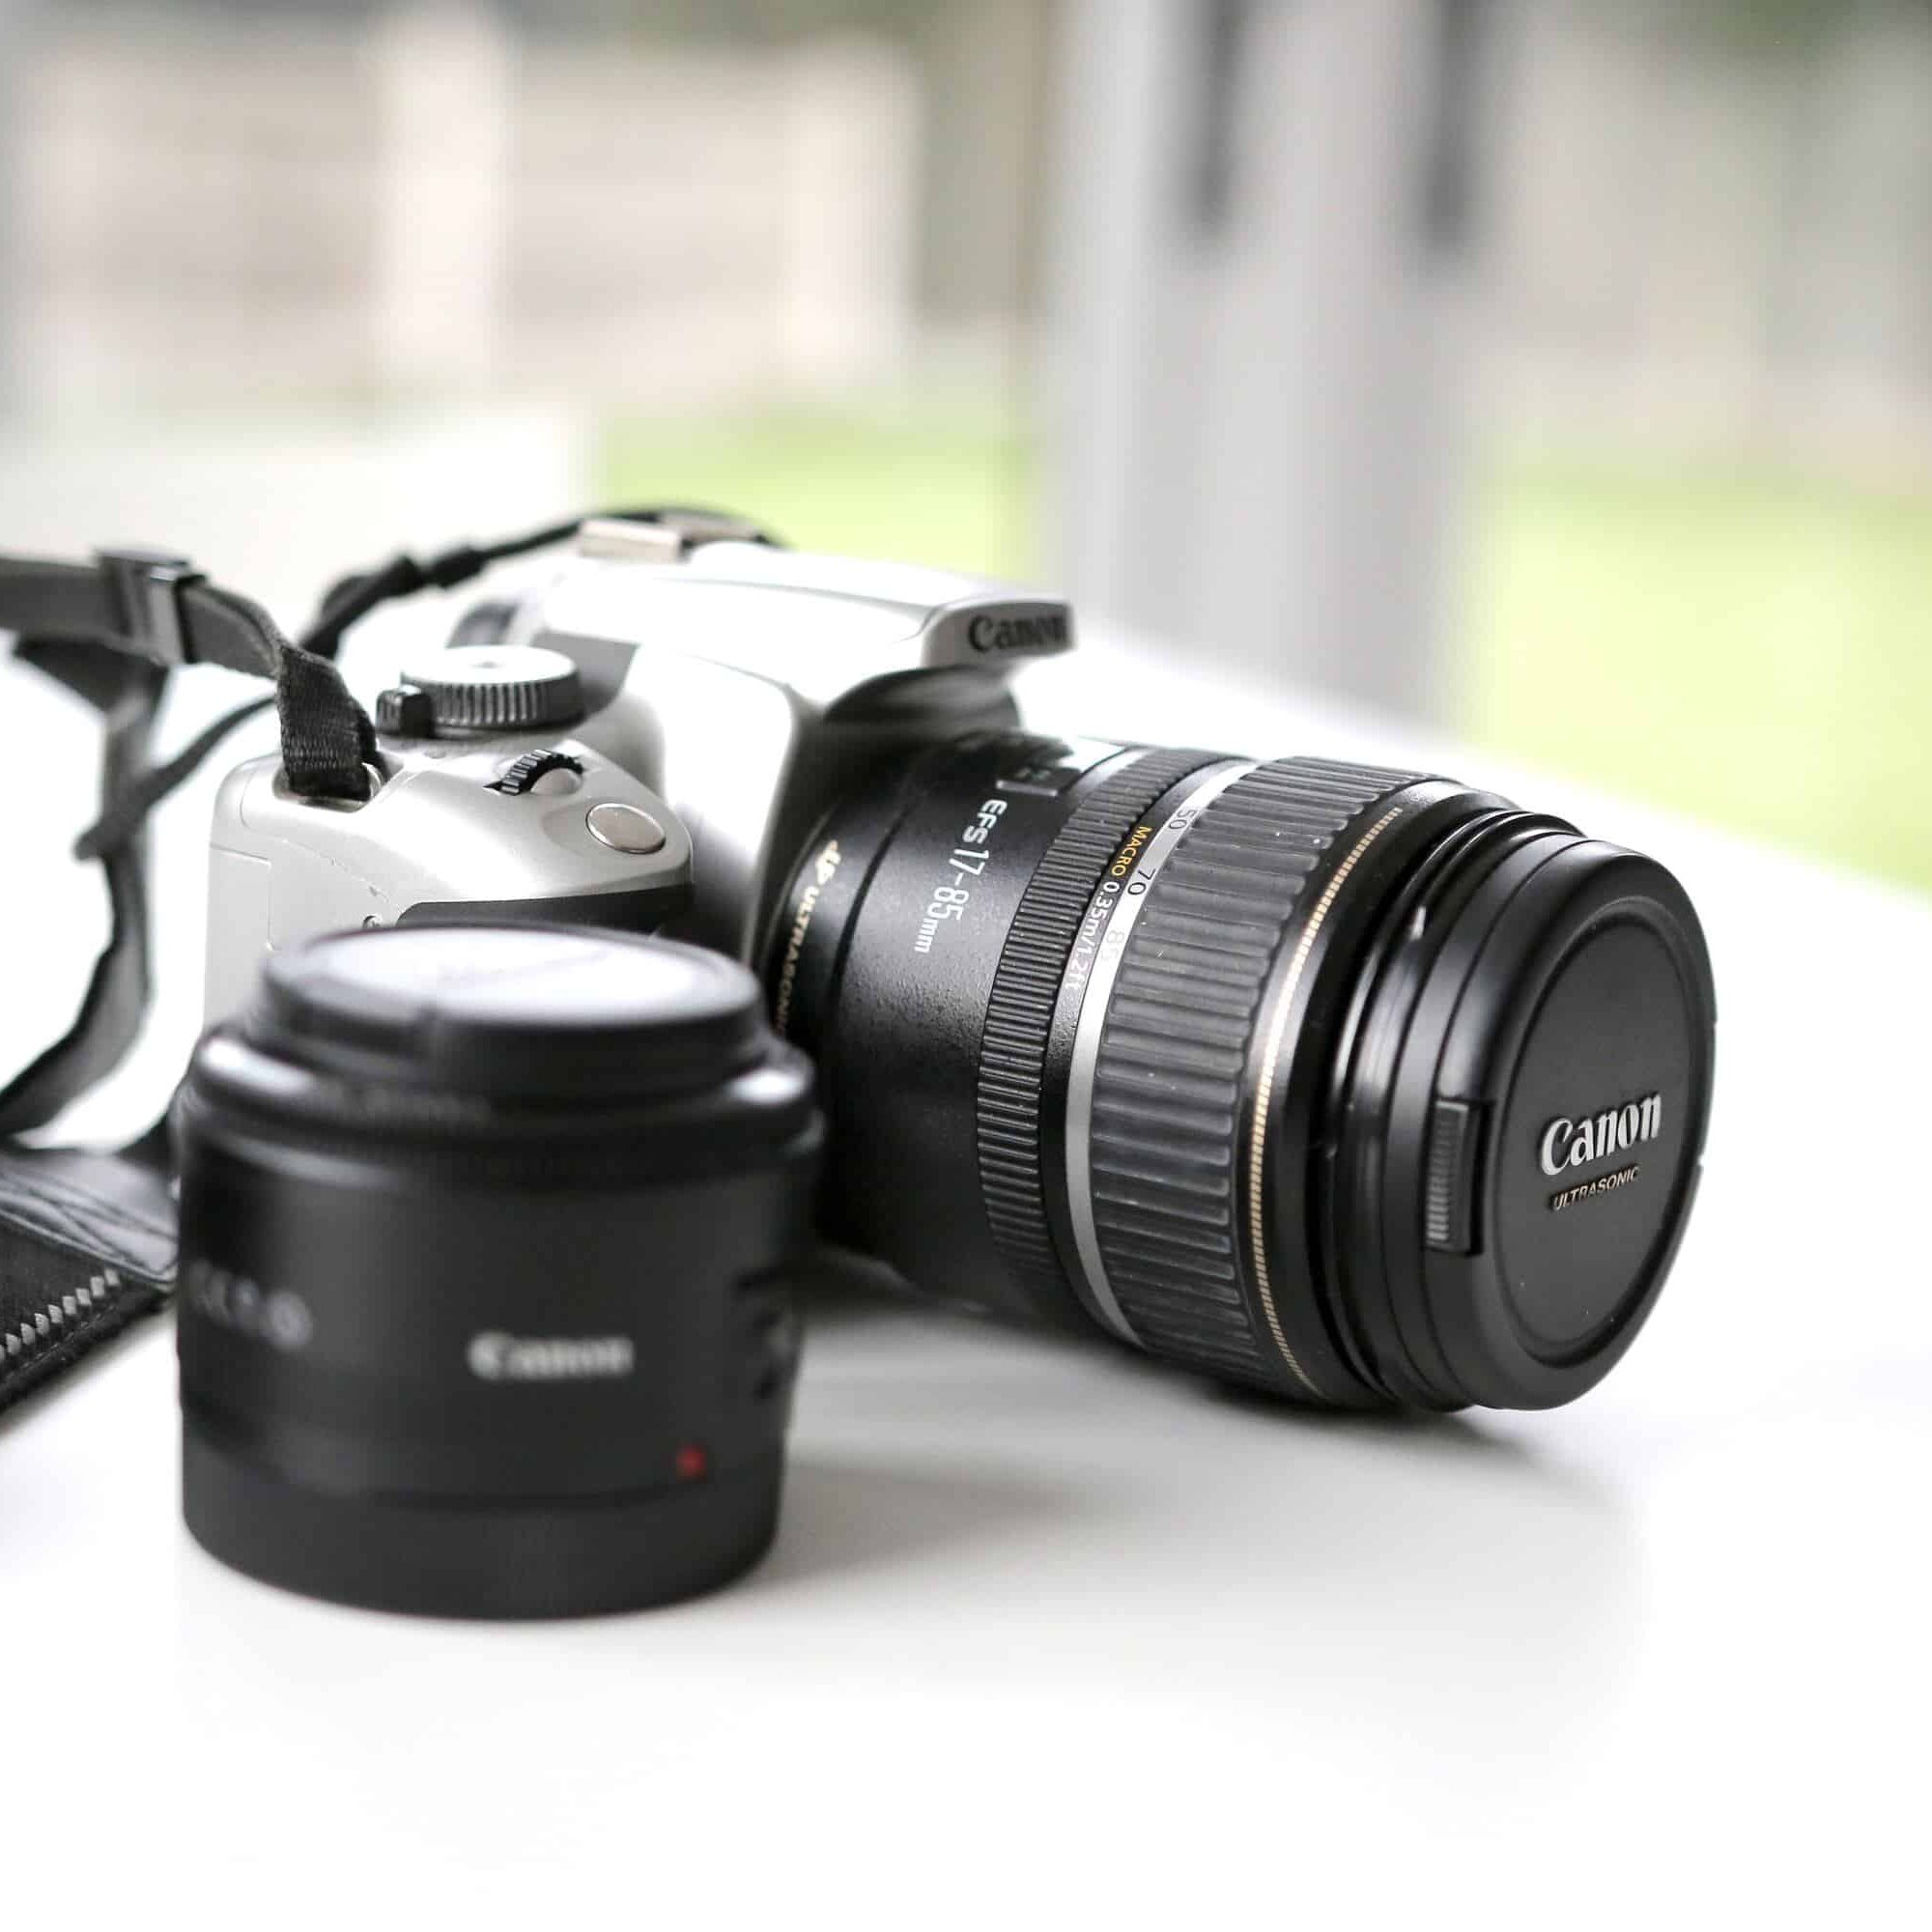 camera-with-lens.jpg